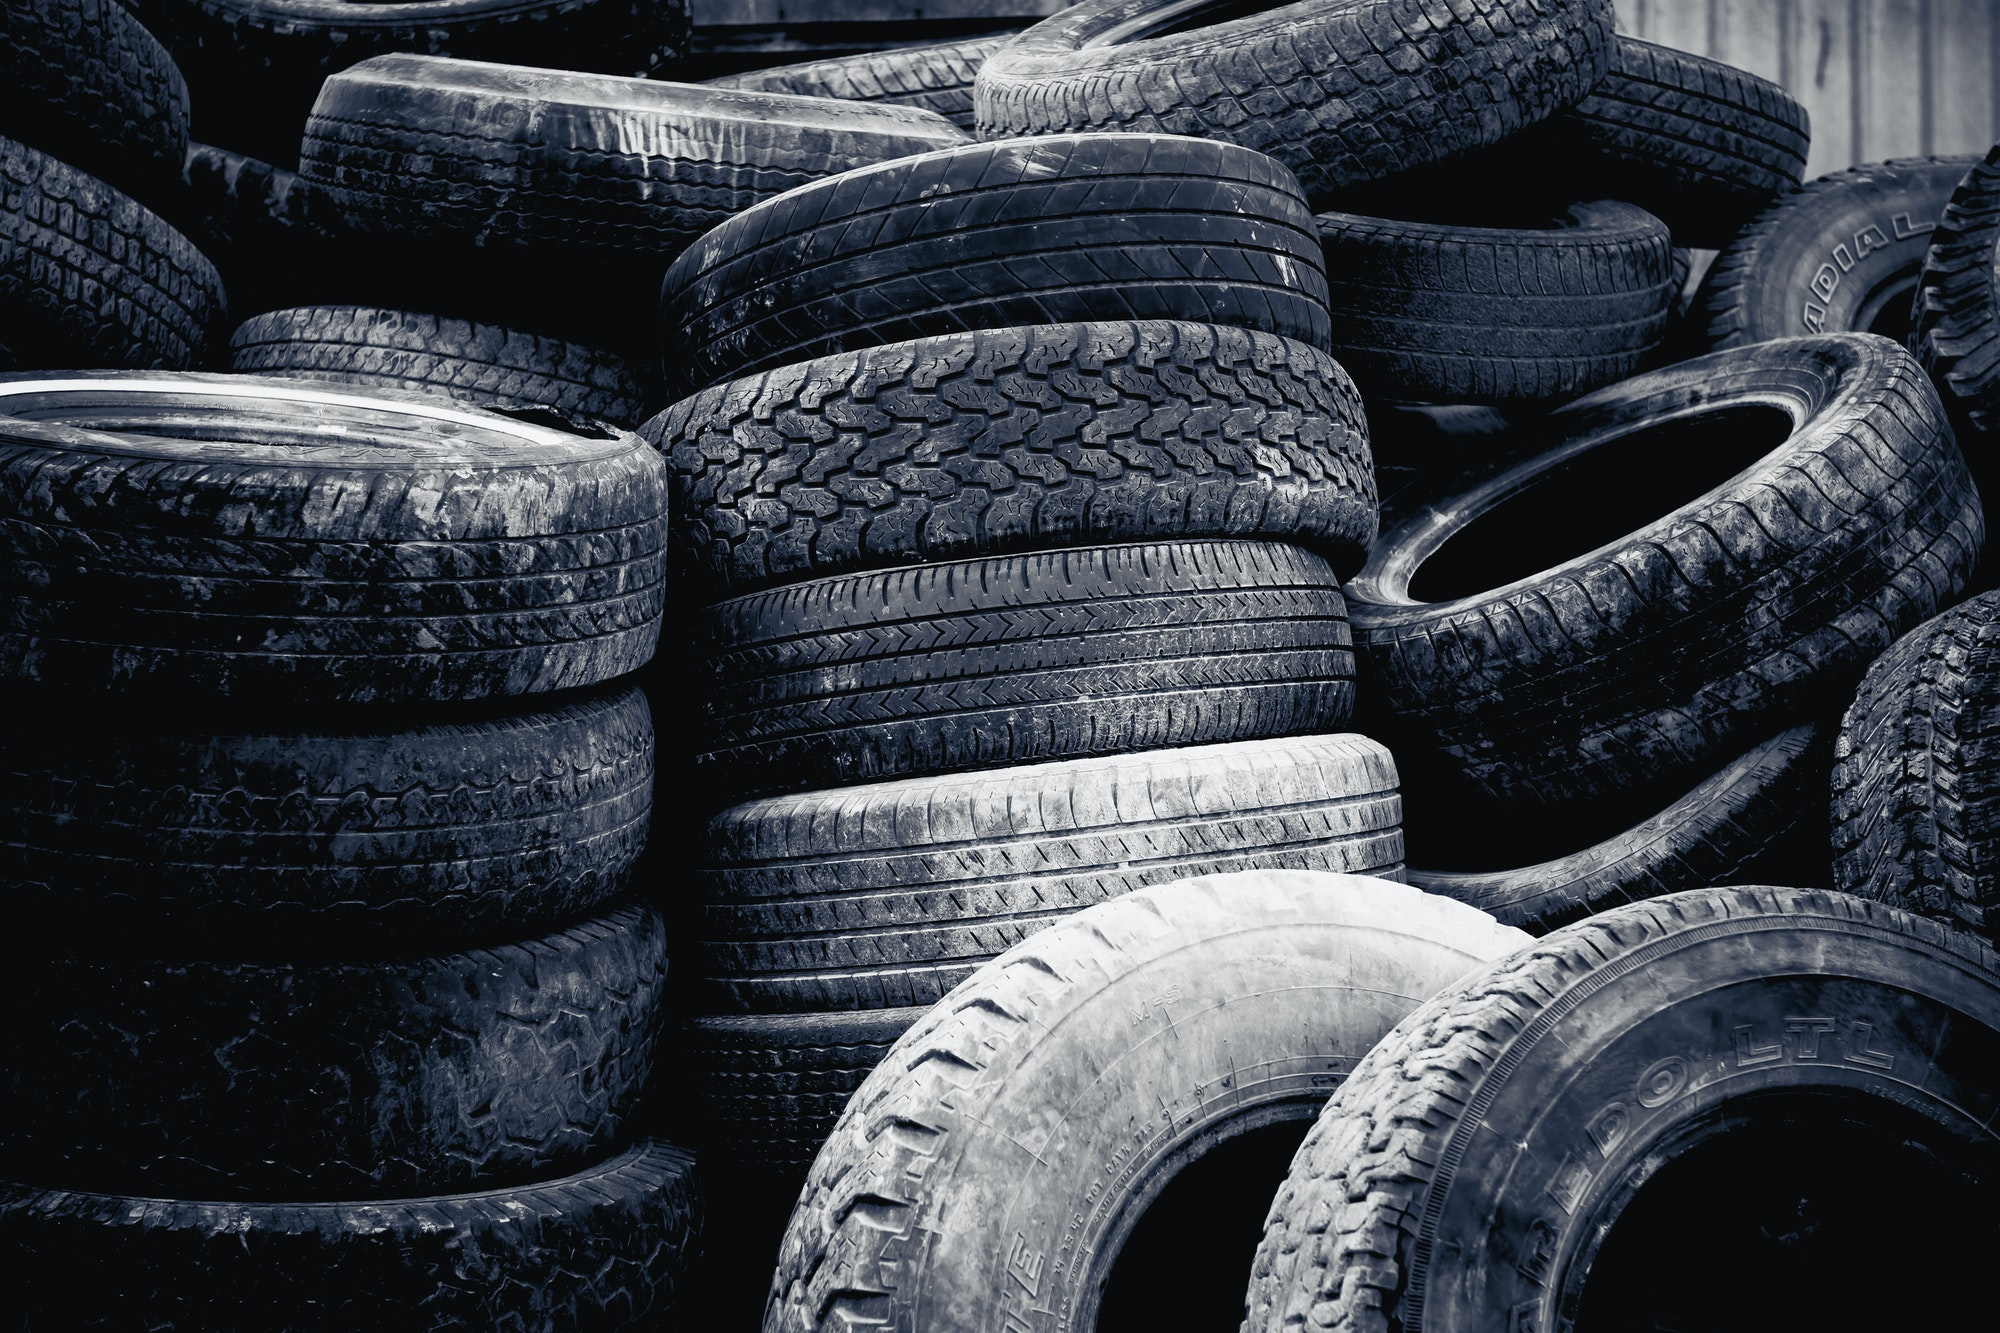 Death by tires. Actually, there's a valuable plus in the science of why